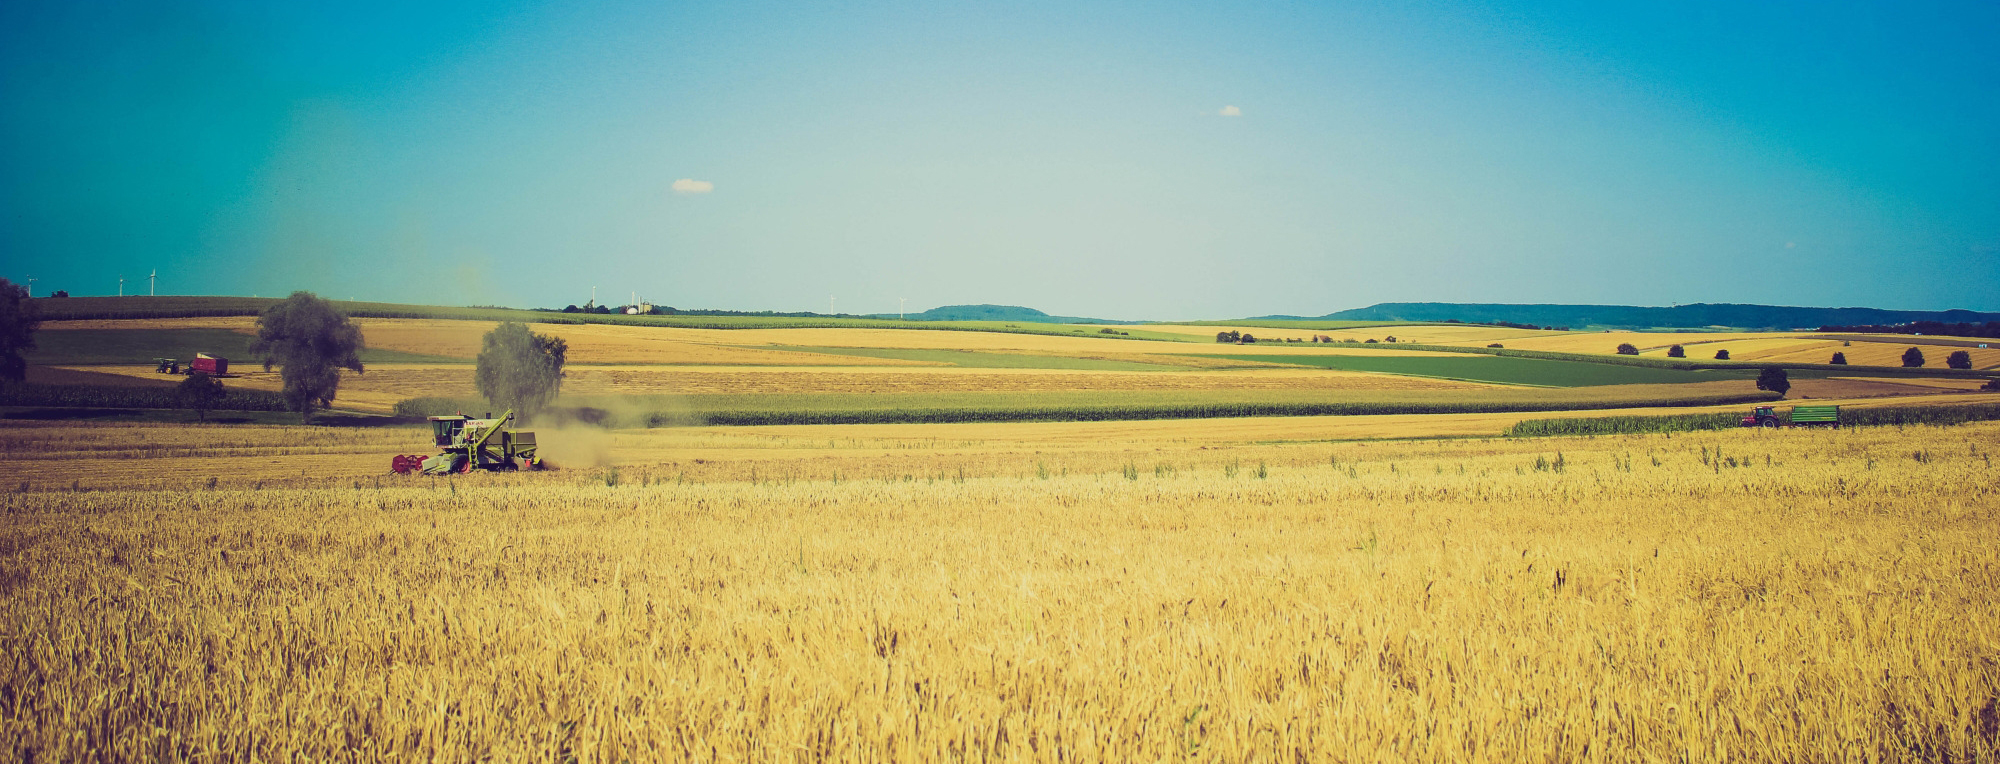 wheat-field-background